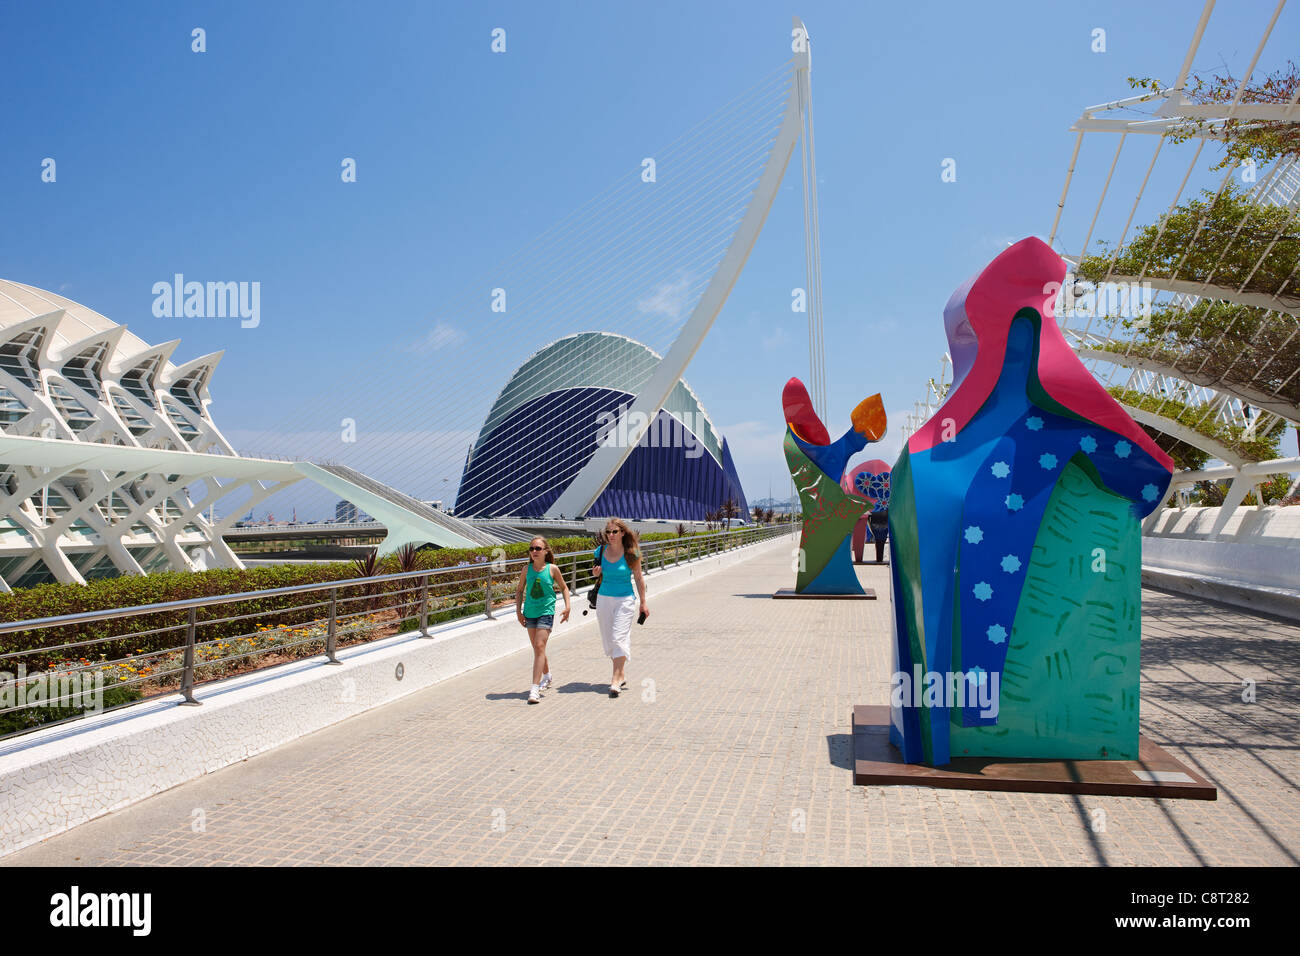 City of Arts and Sciences. Valencia, Spain. - Stock Image